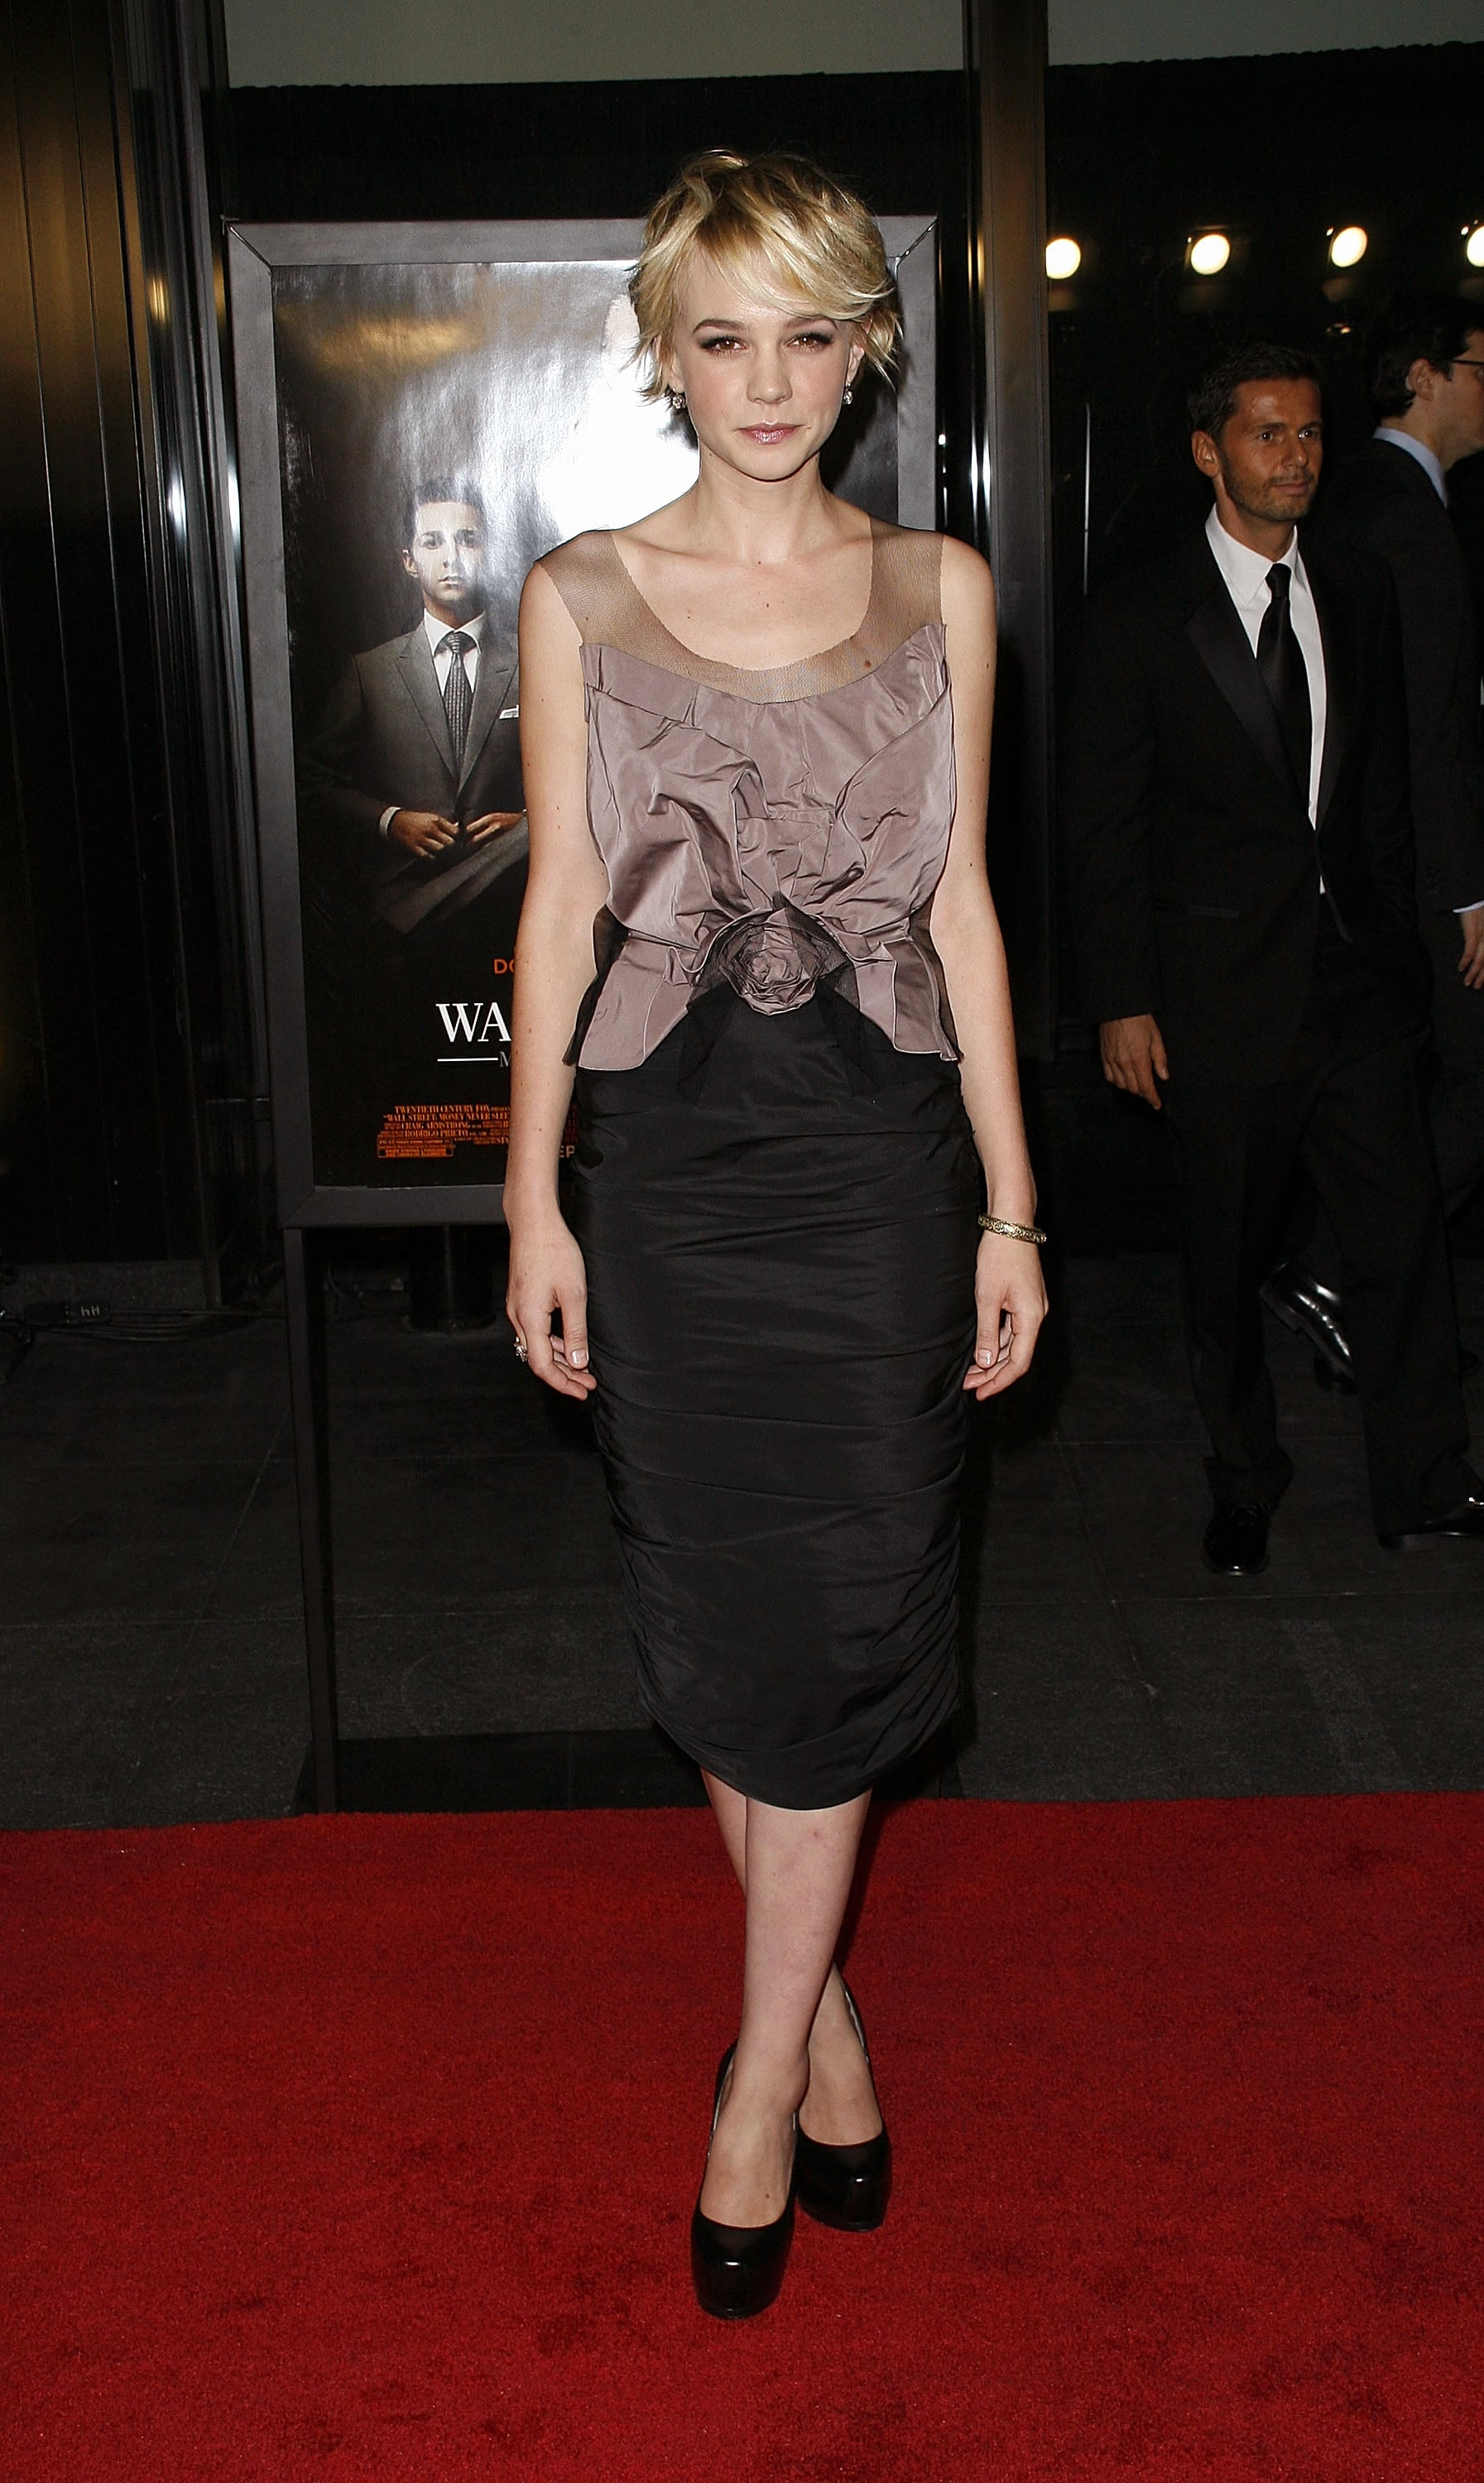 Carey Mulligan in Nina Ricci at the 2010 Wall Street: Money Never Sleeps NYC Premiere